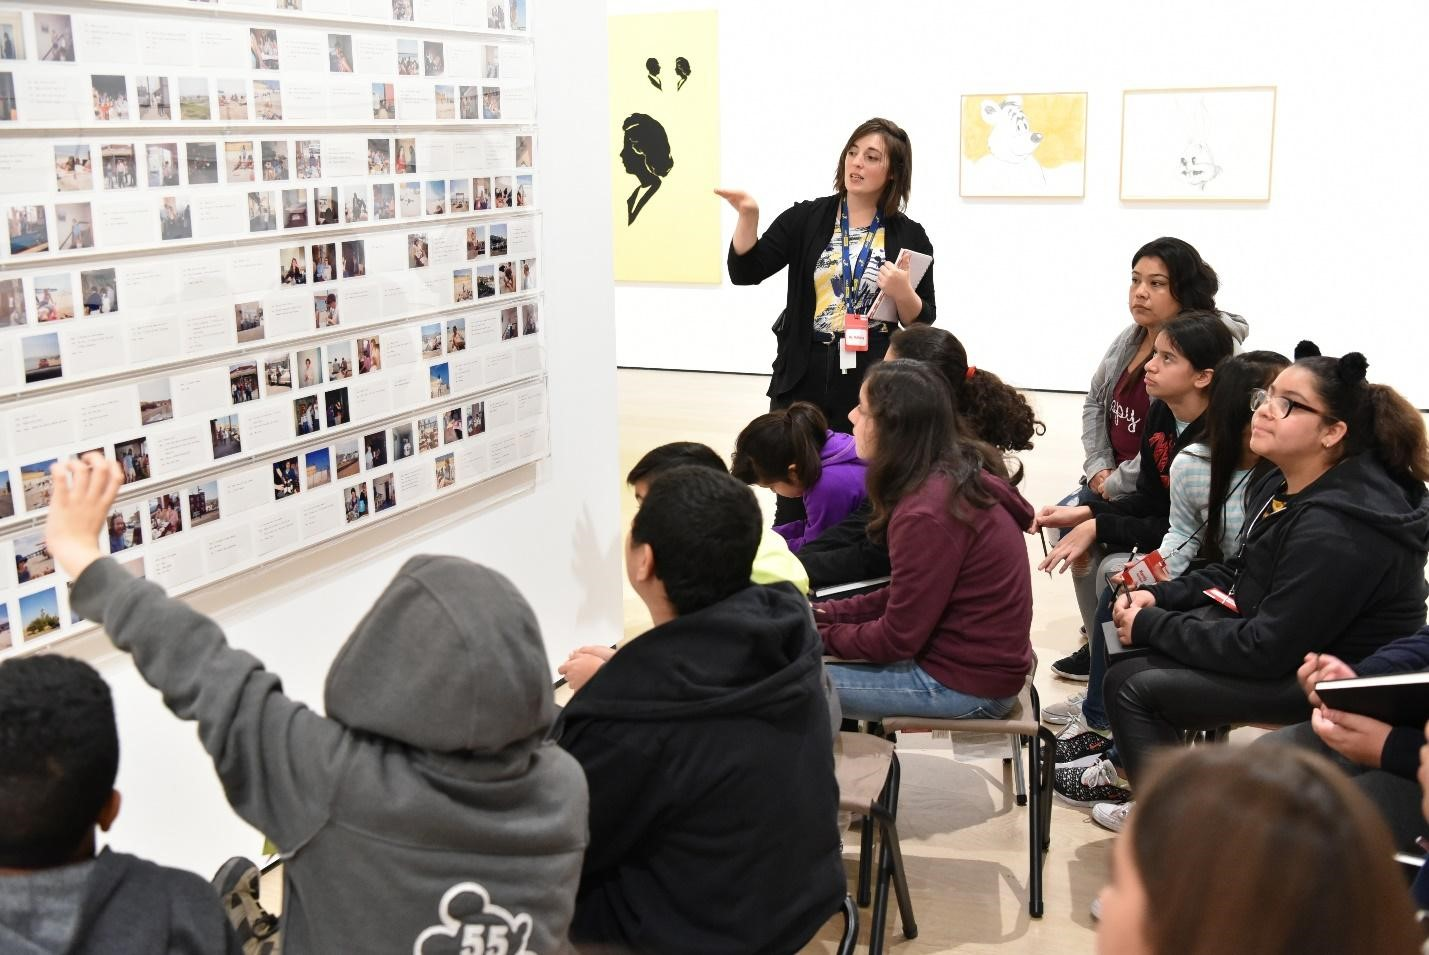 An instructor leads a group of children in a discussion of a work of art on display.